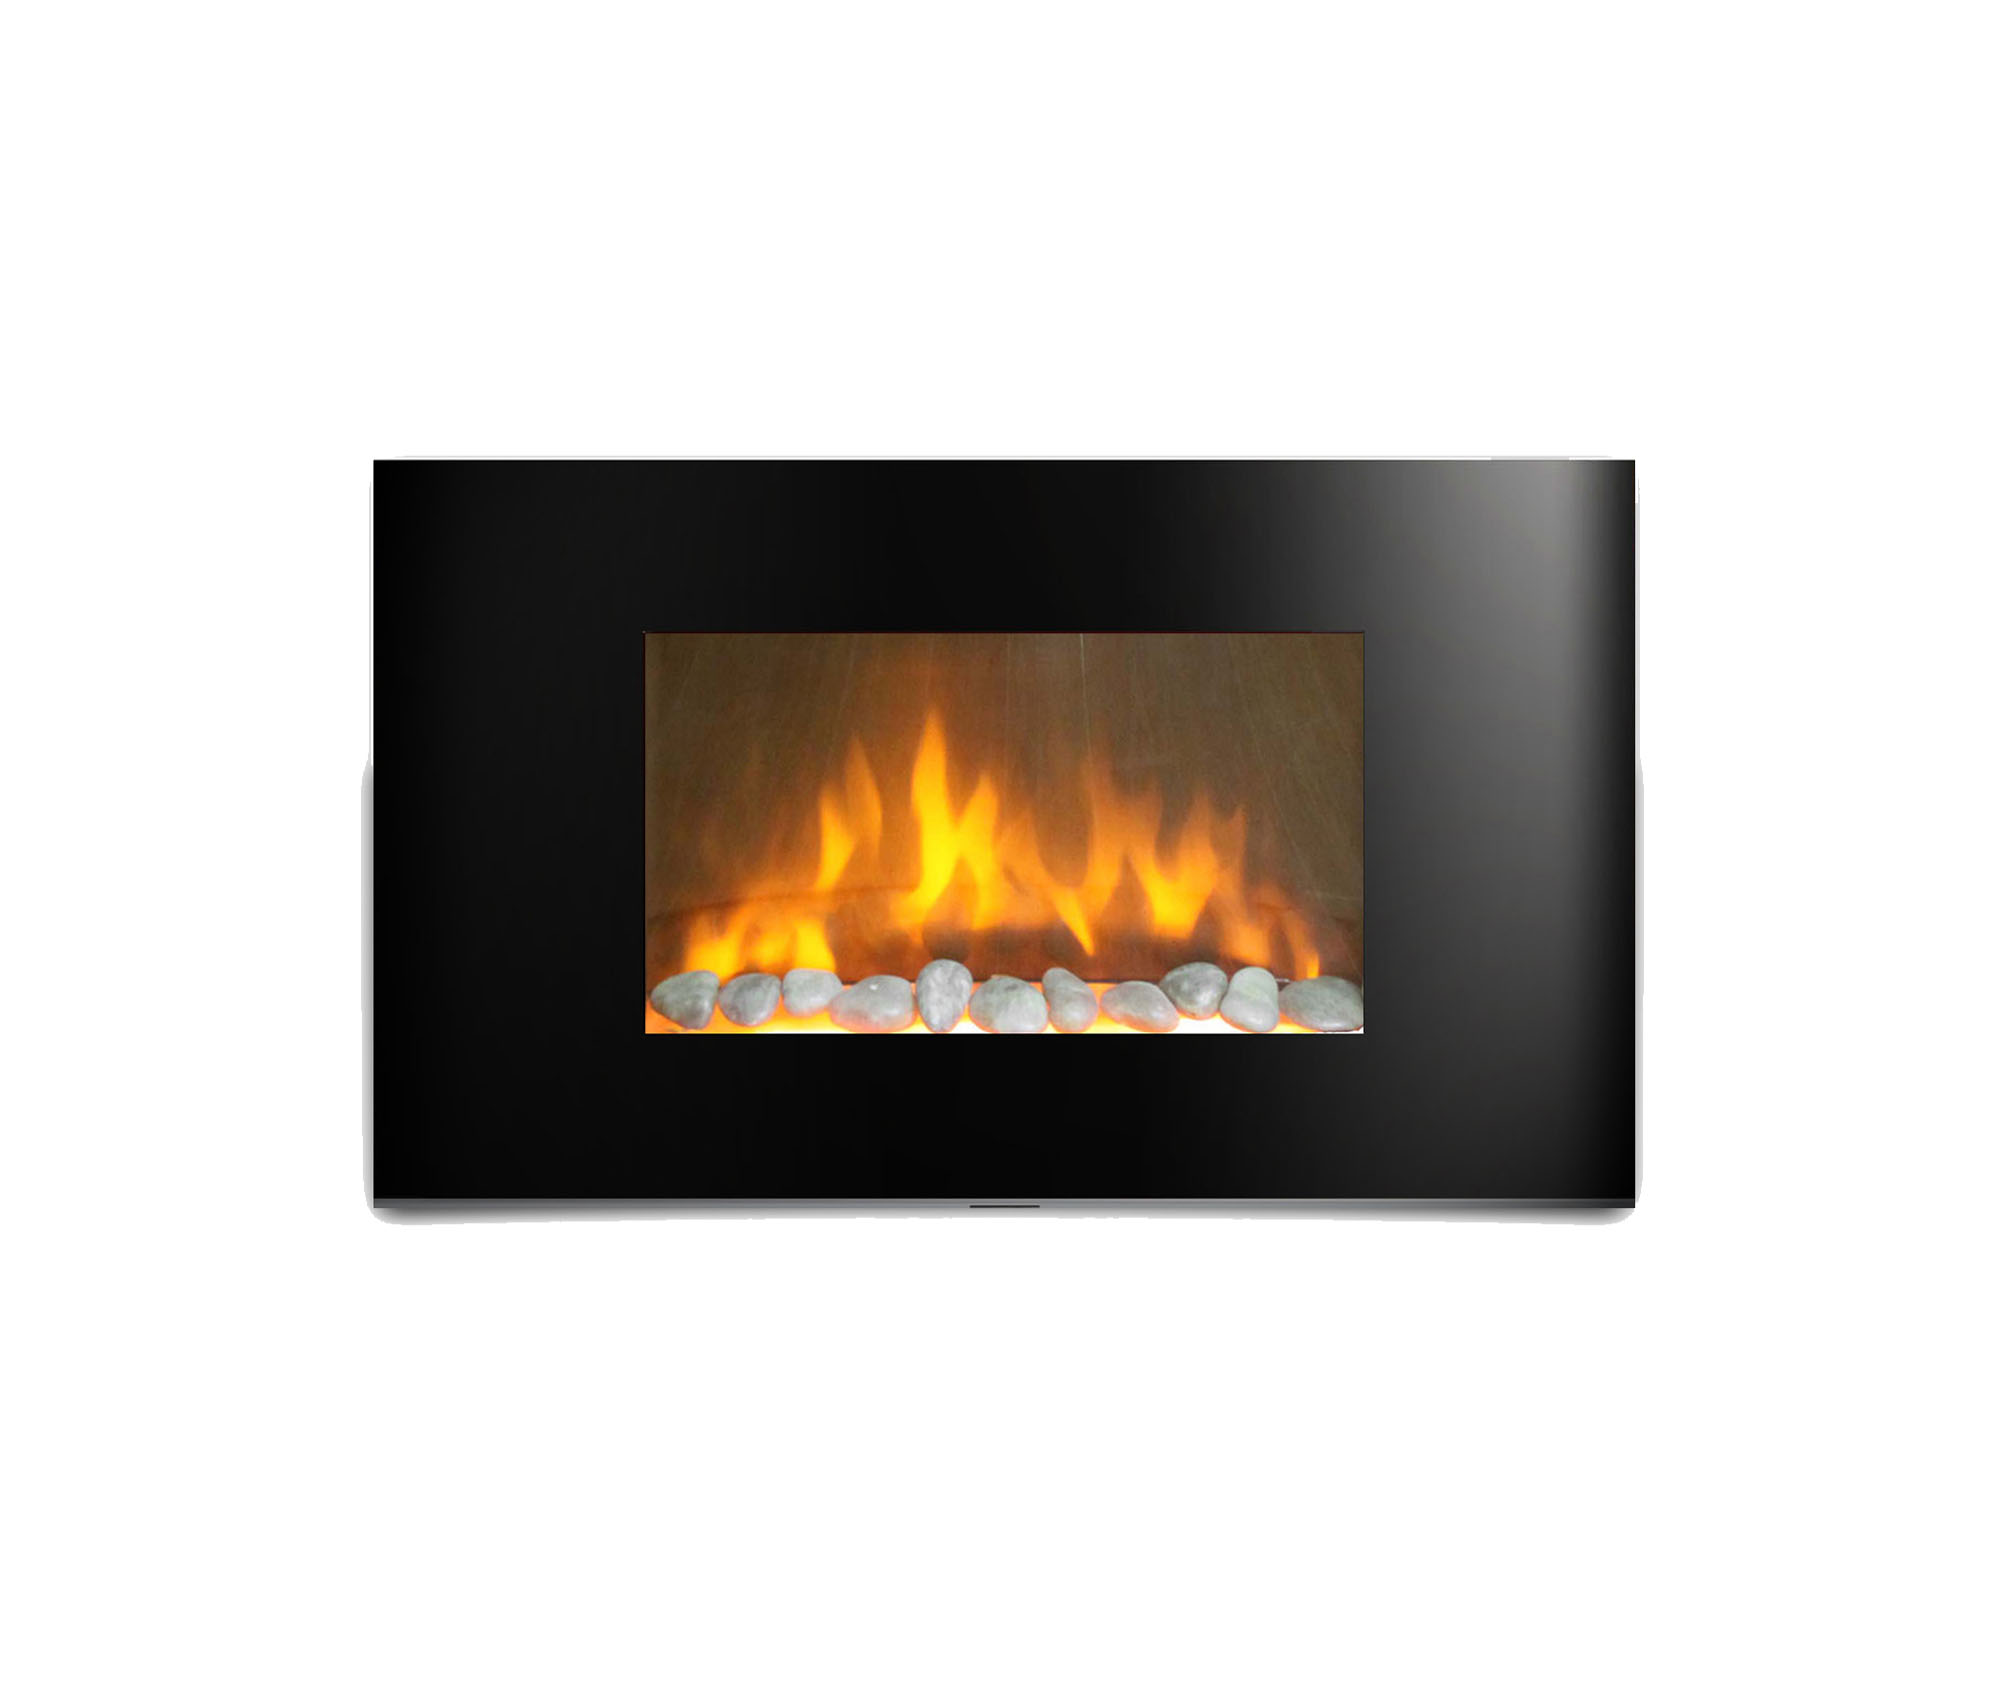 Wall Hanging Fireplace ambionair flame - led wall-mounted fireplace (ef-1510 bp) - home